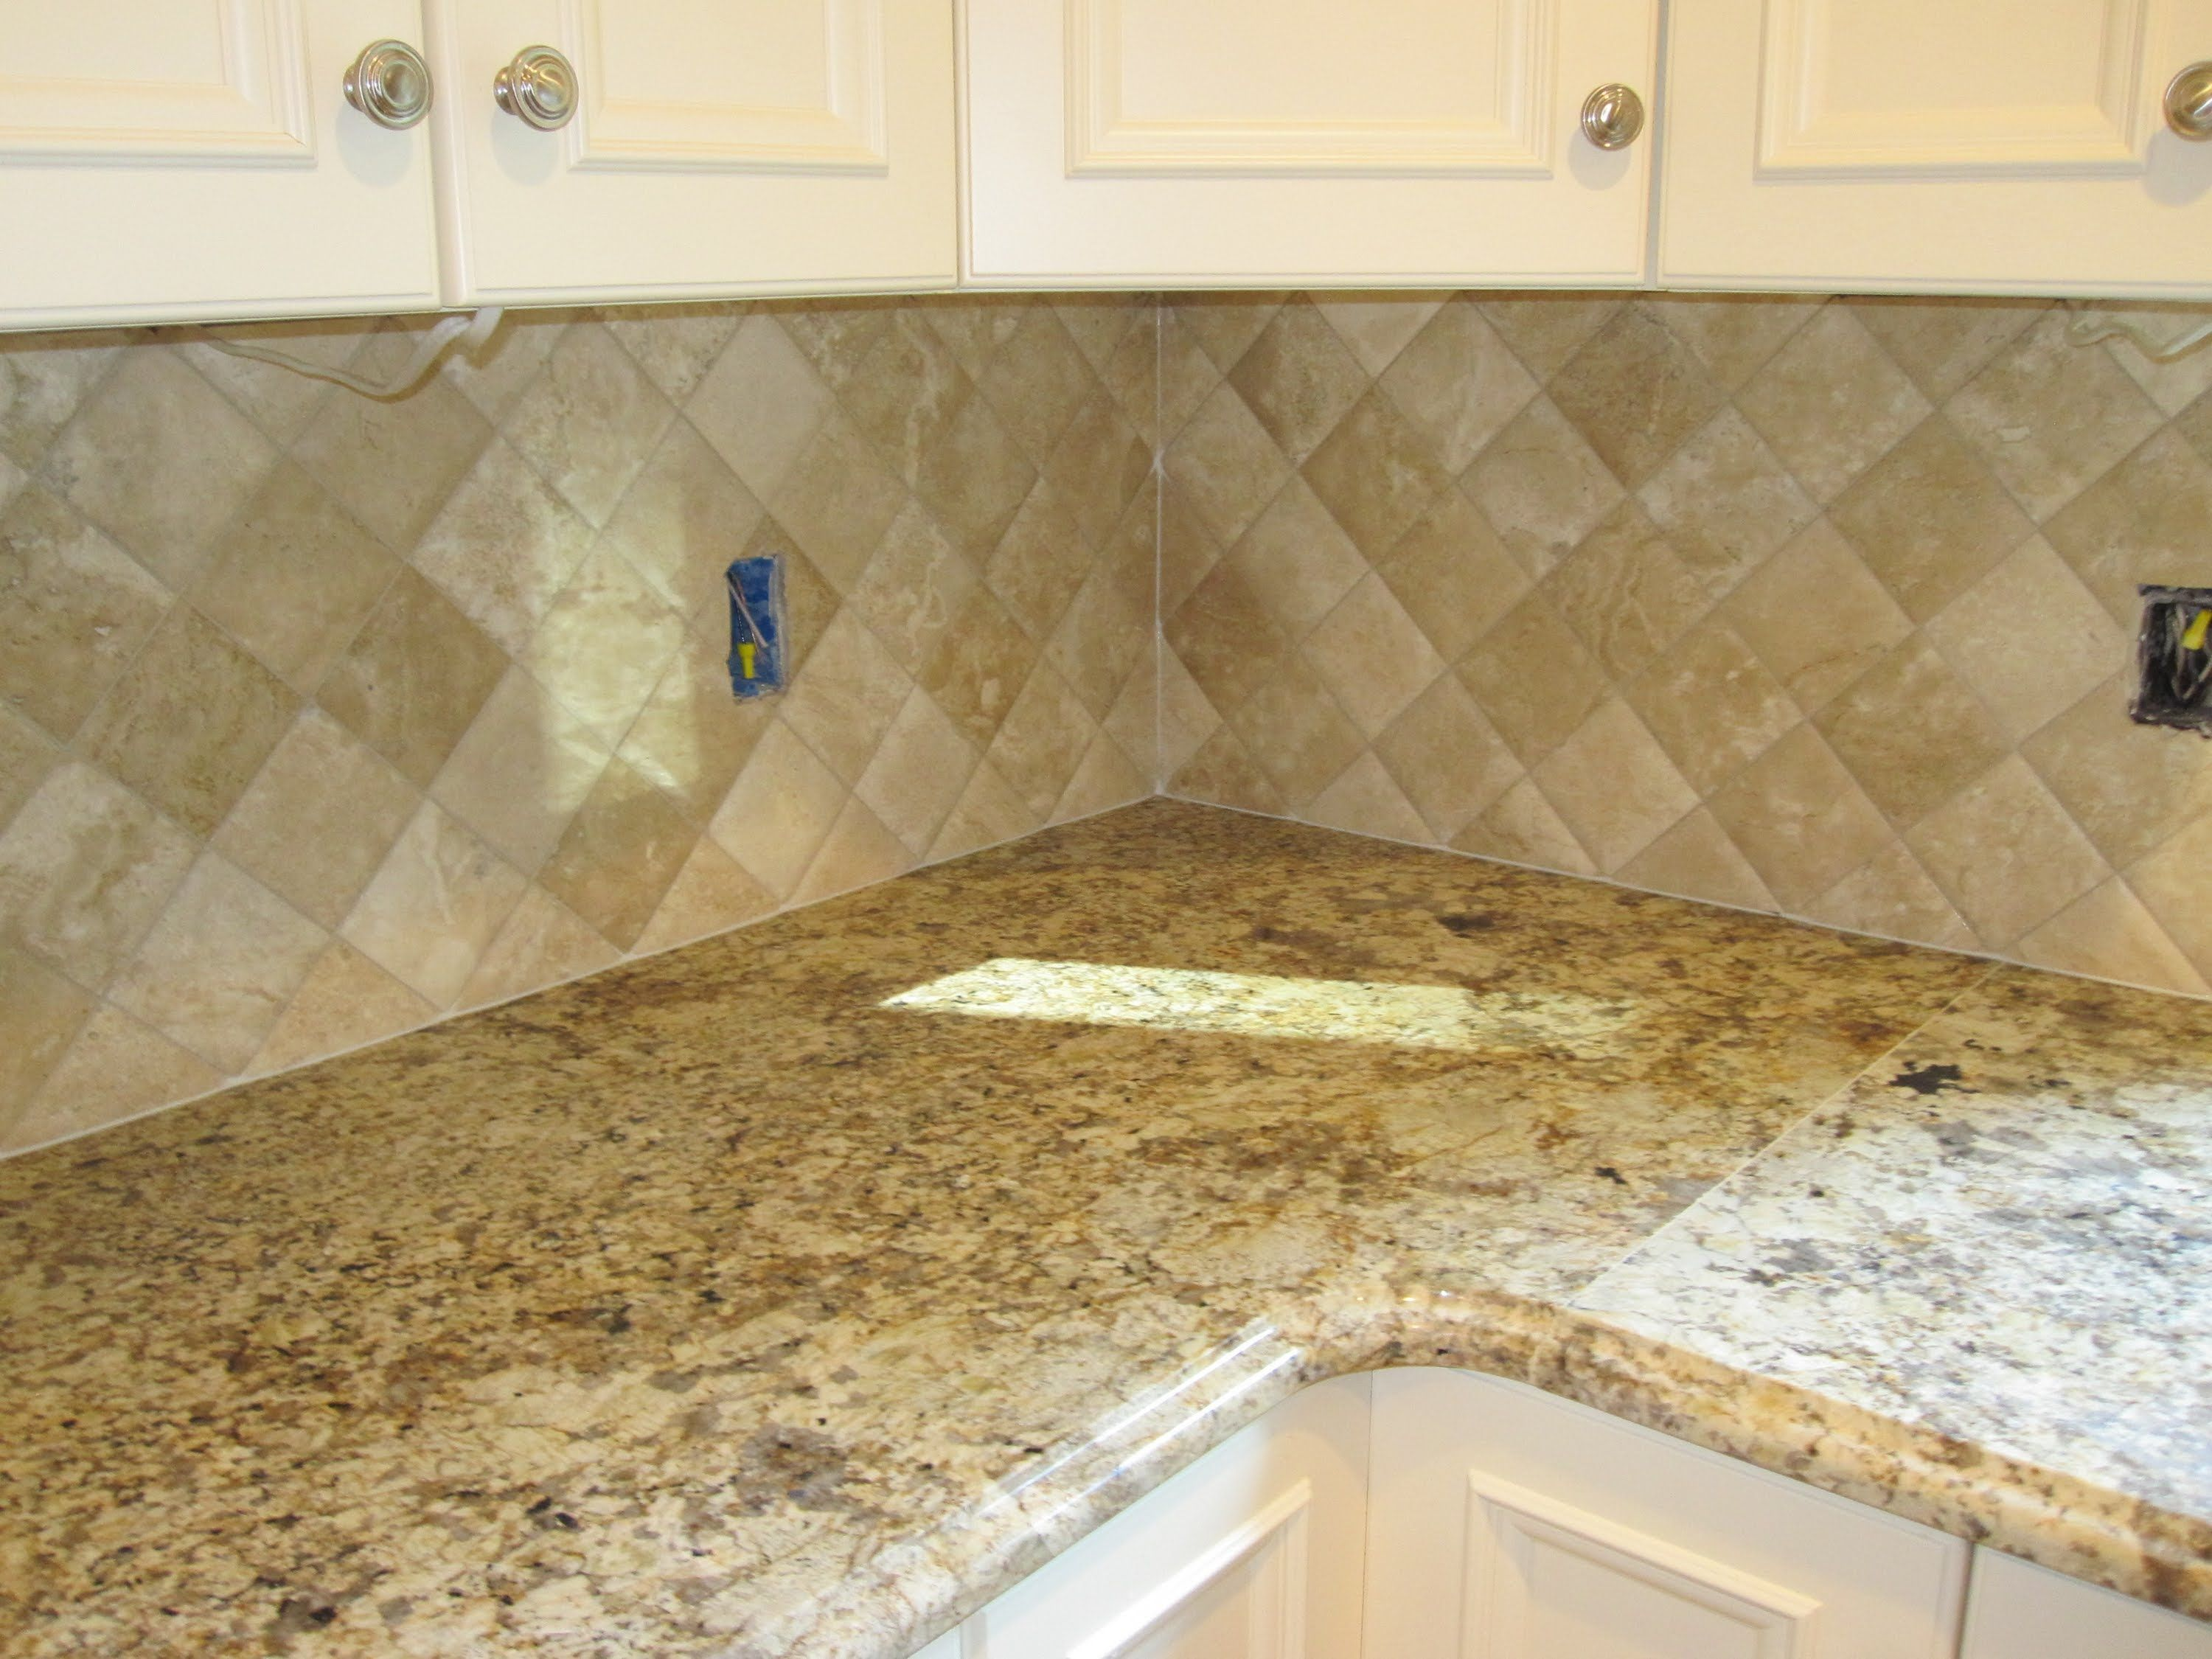 Kitchen Backsplash Travertine Tile Backsplash Travertine